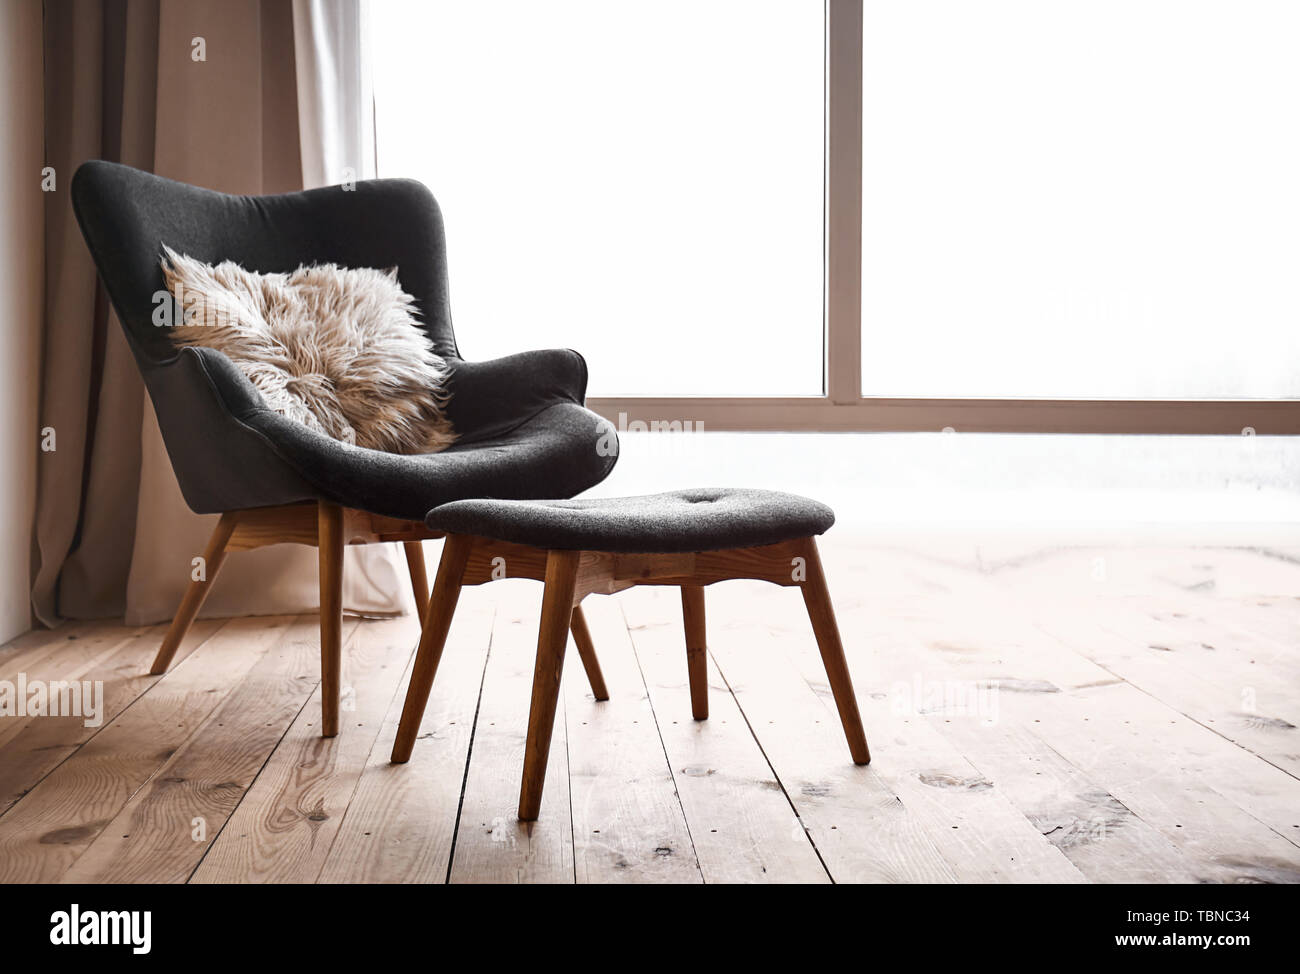 Comfortable armchair and footstool near window in flat - Stock Image